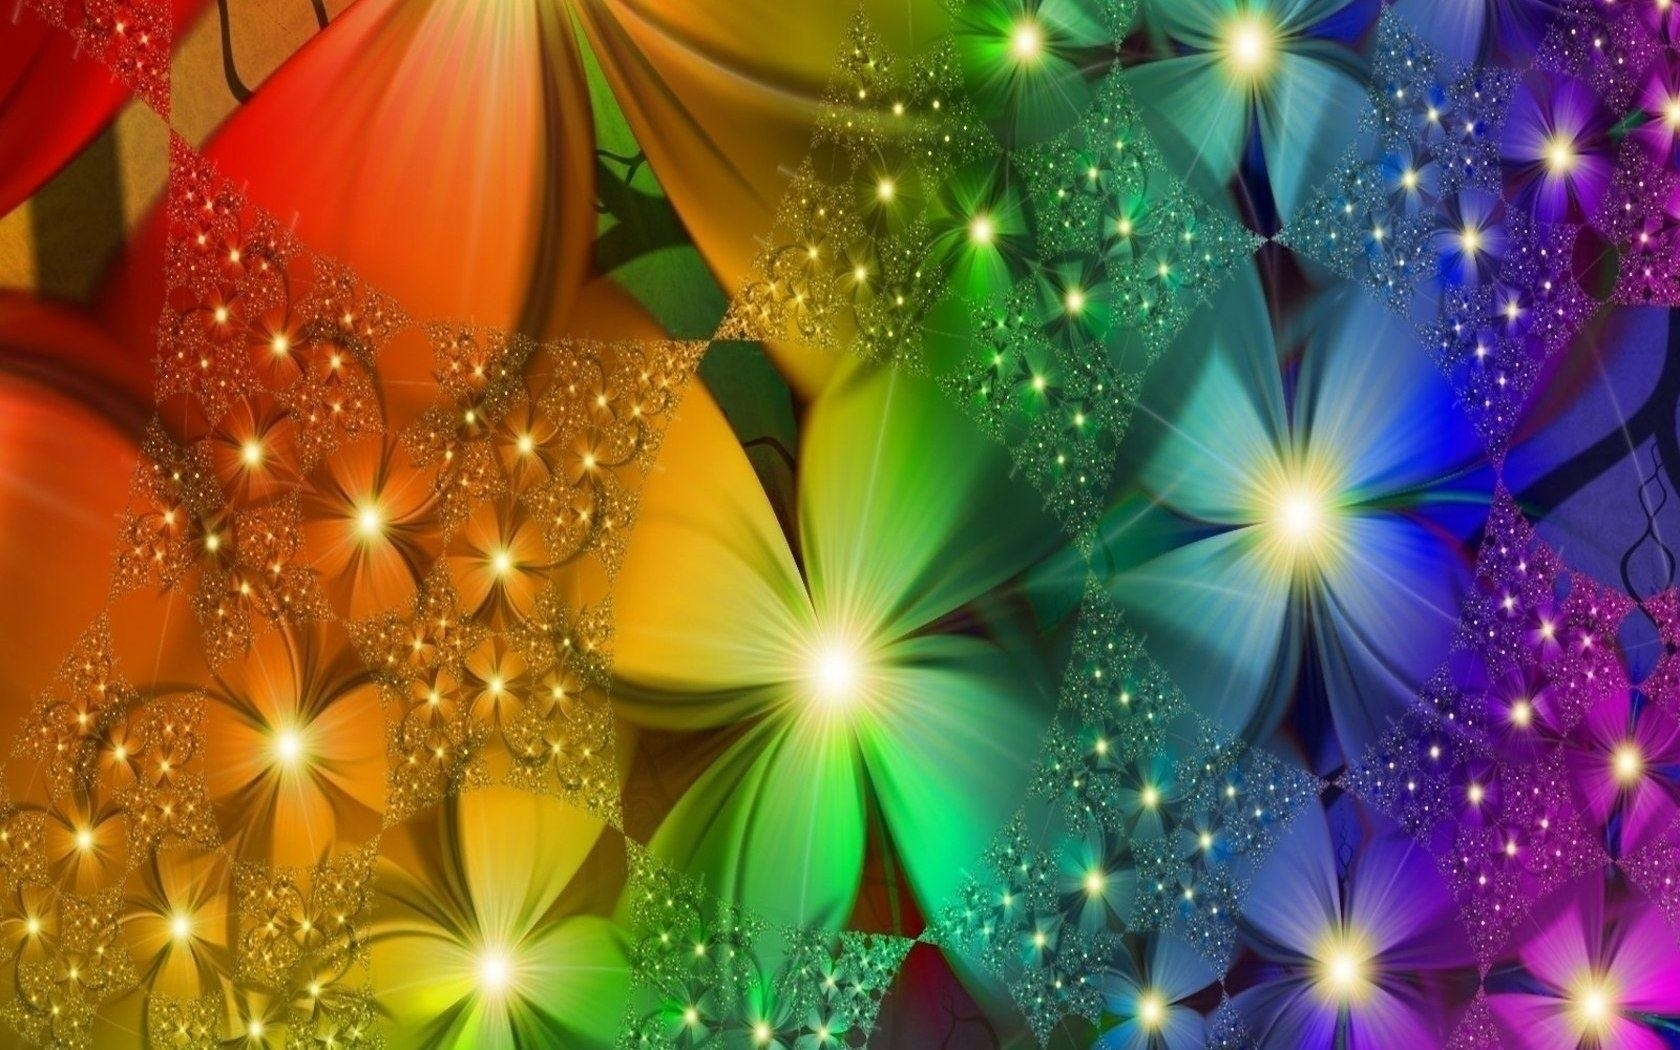 10 Best Rainbow Flower Wallpaper Desktop FULL HD 1920×1080 For PC Background